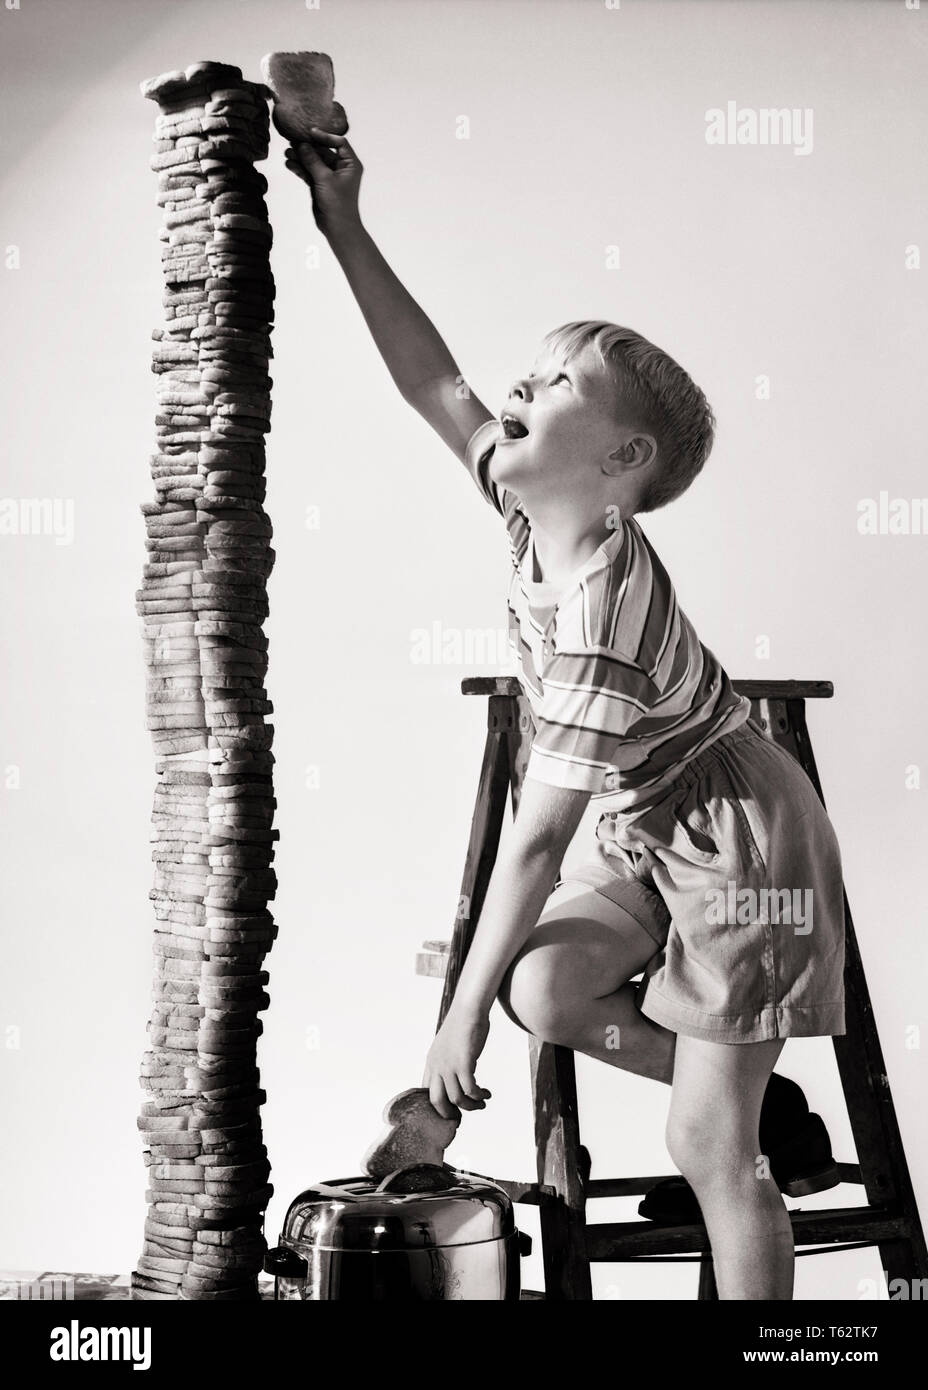 1950s EAGER BOY STANDING ON STEP LADDER REACHING THE TOP BUILDING A TOWER OF TOASTED BREAD SLICES - j15943 DEB001 HARS HALF-LENGTH MALES RISK PILES TROUBLED B&W BIZARRE TOWER HUNGRY PRANK HAPPINESS WEIRD ADVENTURE MISCHIEF TOAST STACKING CHALLENGE EXCITEMENT ZANY UNCONVENTIONAL MISCHIEVOUS TOWERING BAD BEHAVIOR CONCEPTUAL EXTREME IMAGINATION TOASTED WACKY DEB001 IDIOSYNCRATIC SHORT PANTS T-SHIRT MISCONDUCT AMUSING BEHAVIOR CREATIVITY EAGER ECCENTRIC JUVENILES PILING SKY HIGH TEE SHIRT BLACK AND WHITE CAUCASIAN ETHNICITY ERRATIC OLD FASHIONED OUTRAGEOUS TOWERS - Stock Image